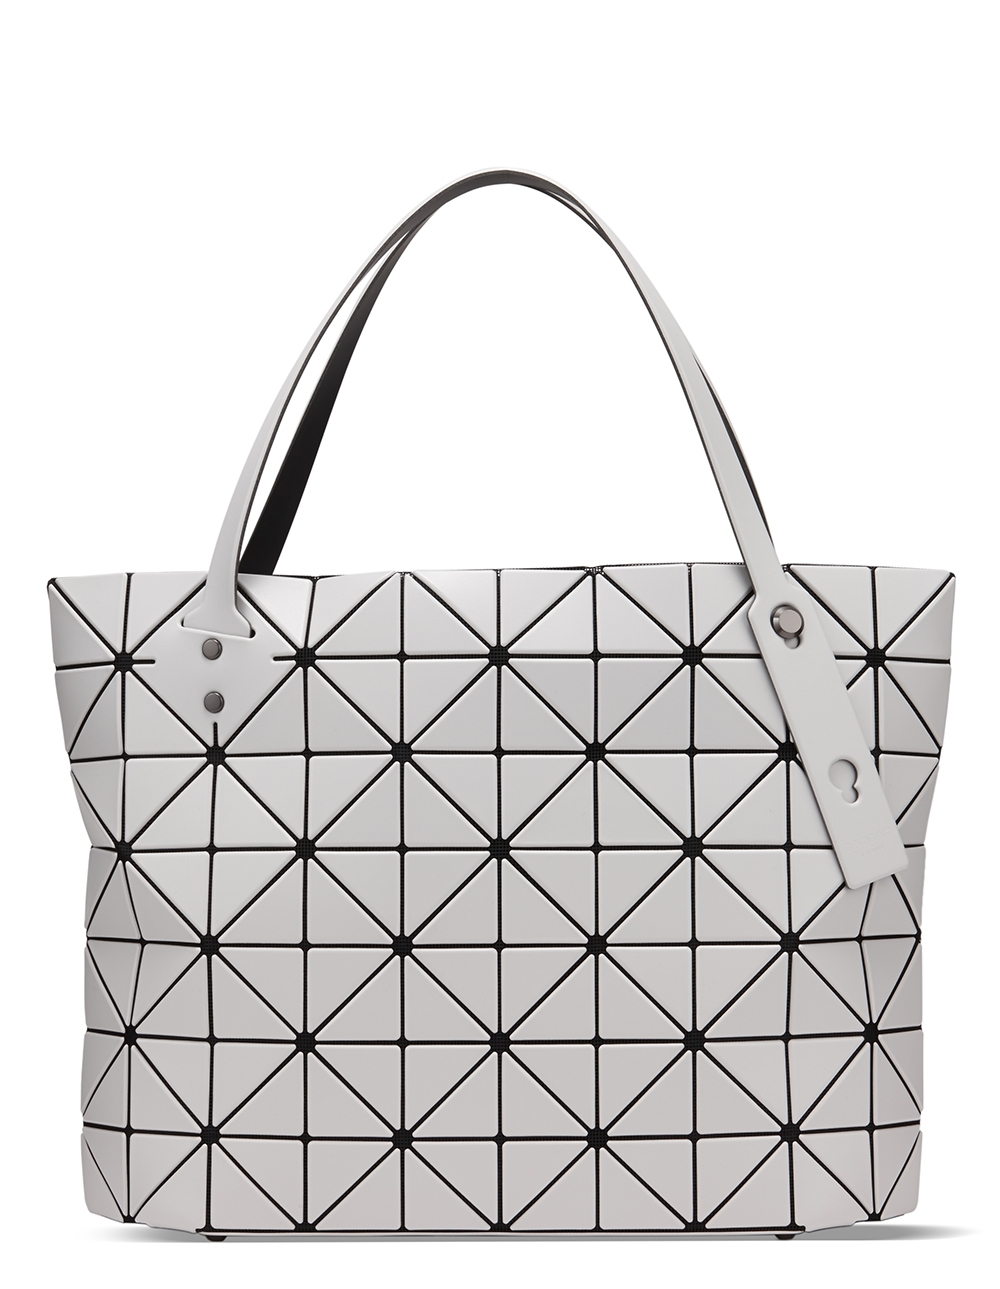 21b0fbaa78 You May Also Love. Previous. Prism Tote Bag - Black ...